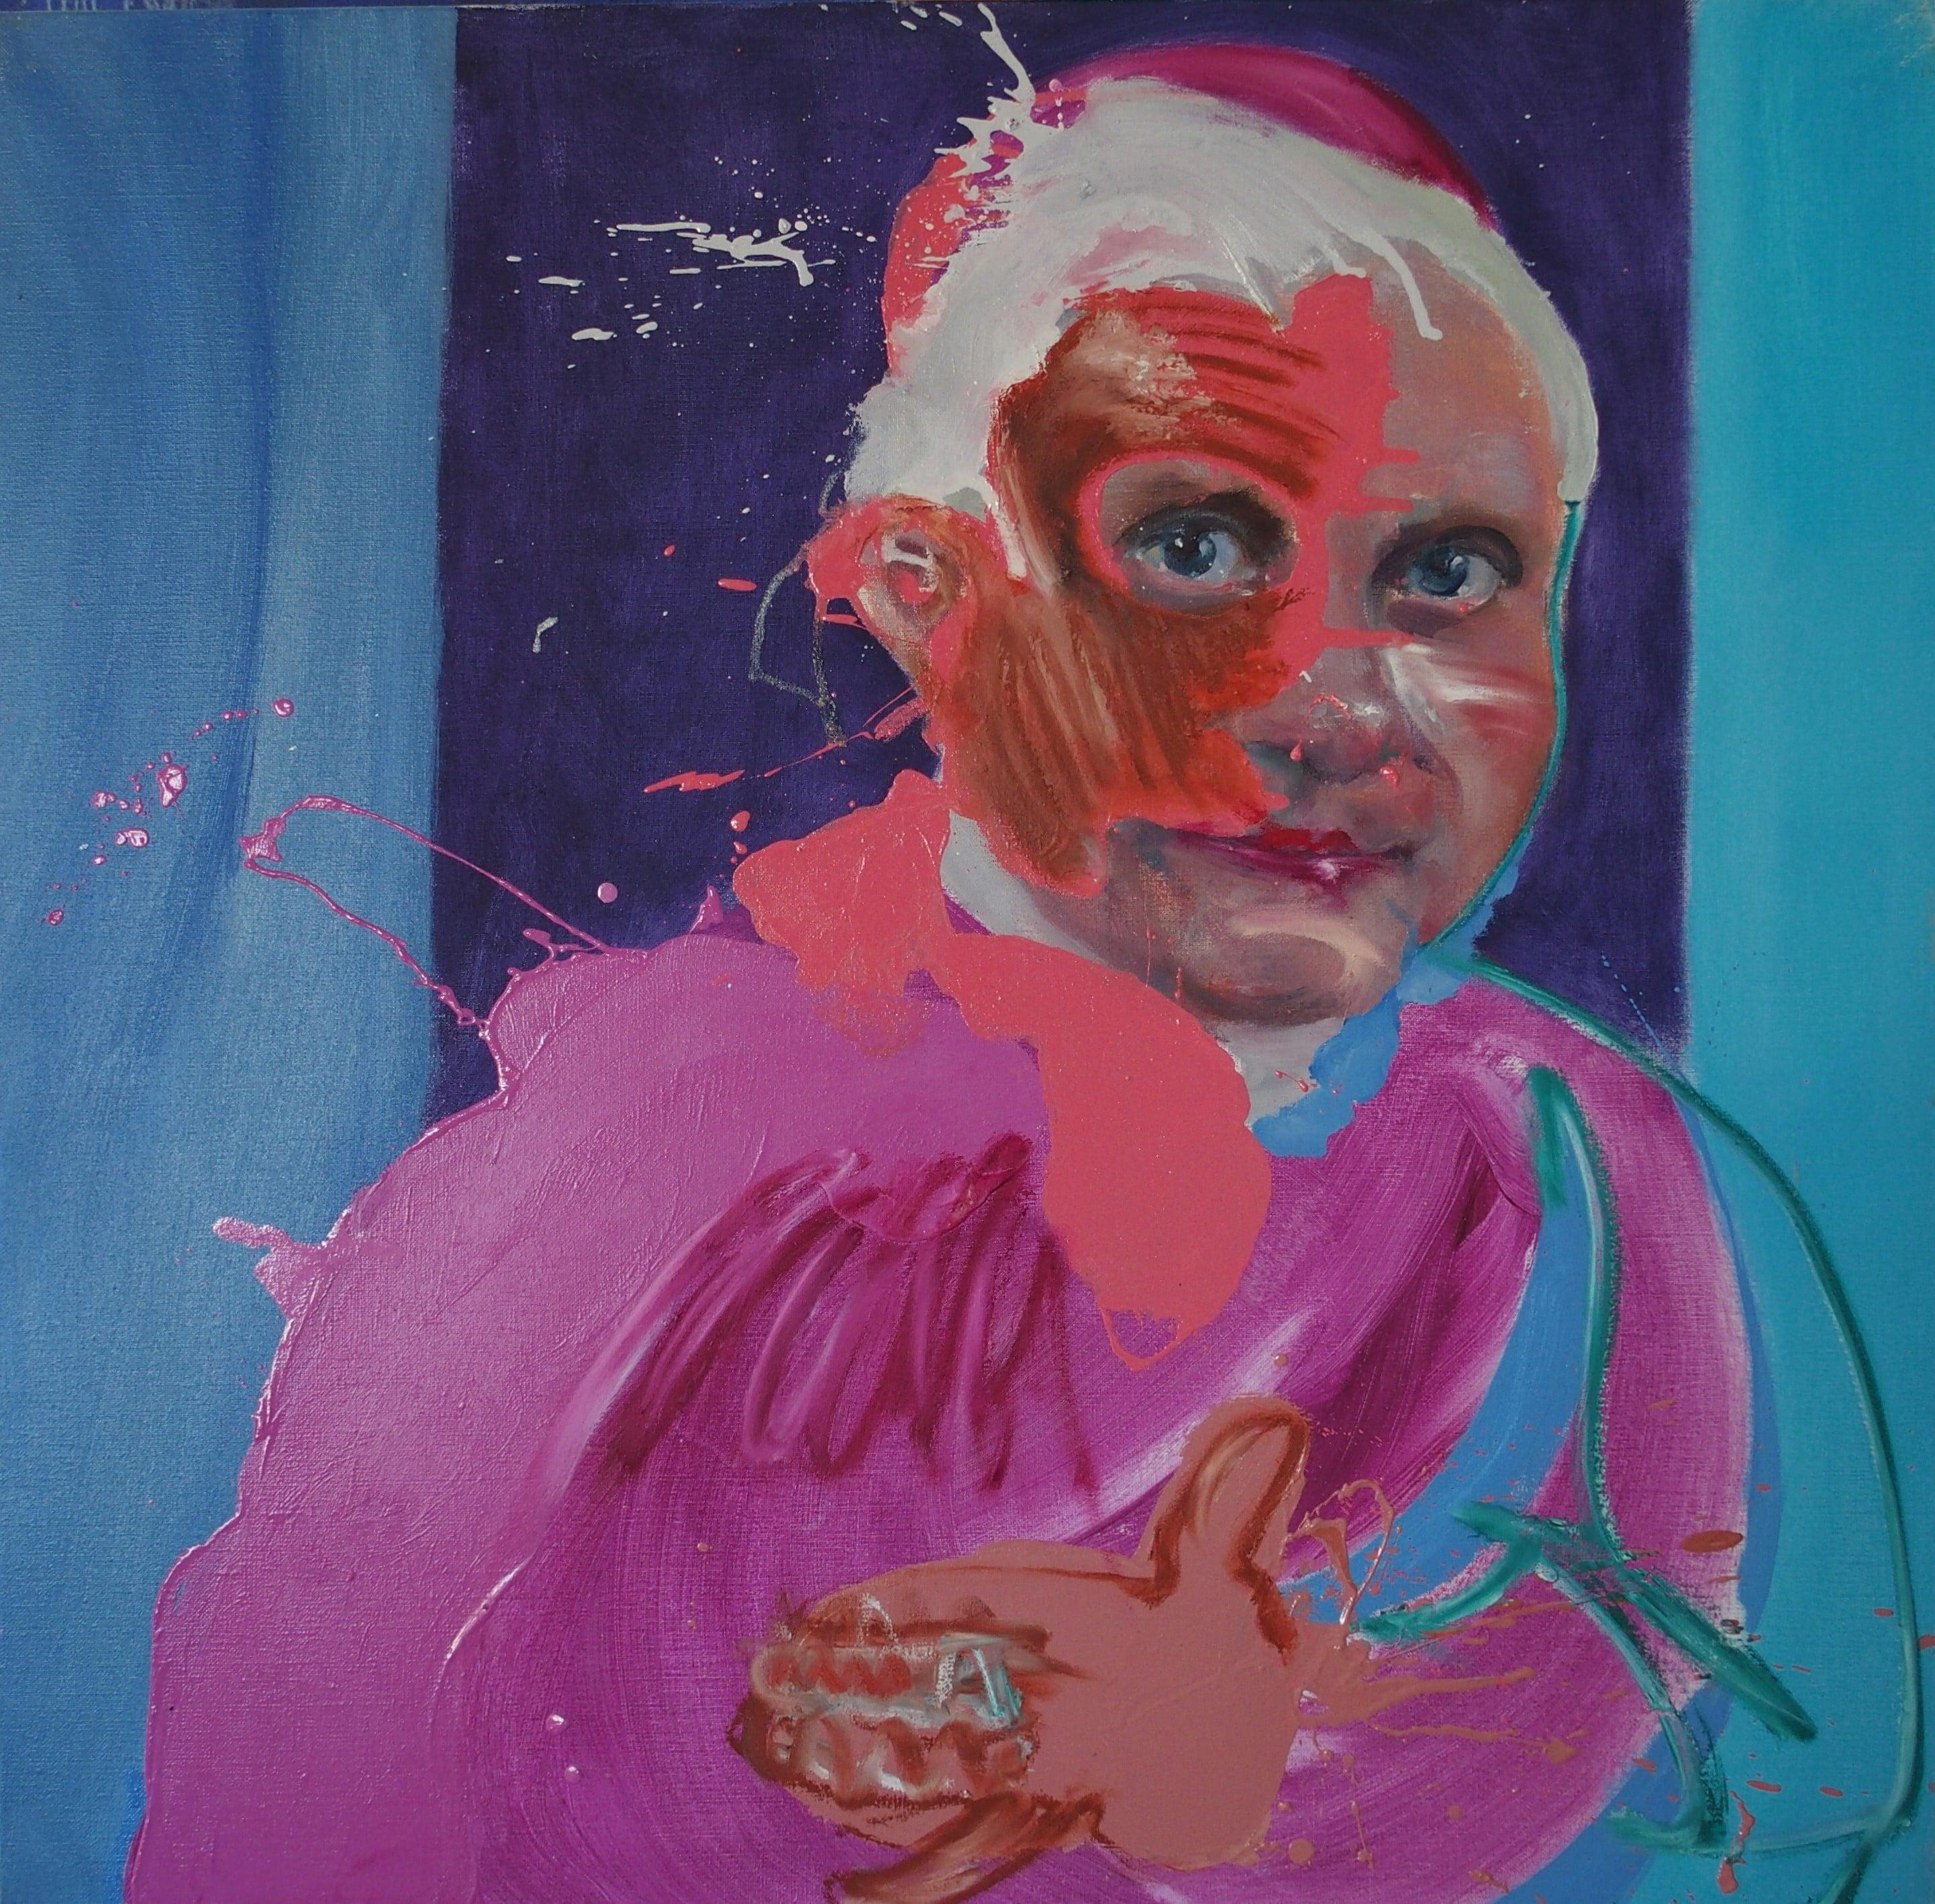 Ratzinger Chocolat by Christophe Dupety - portrait painting, pope